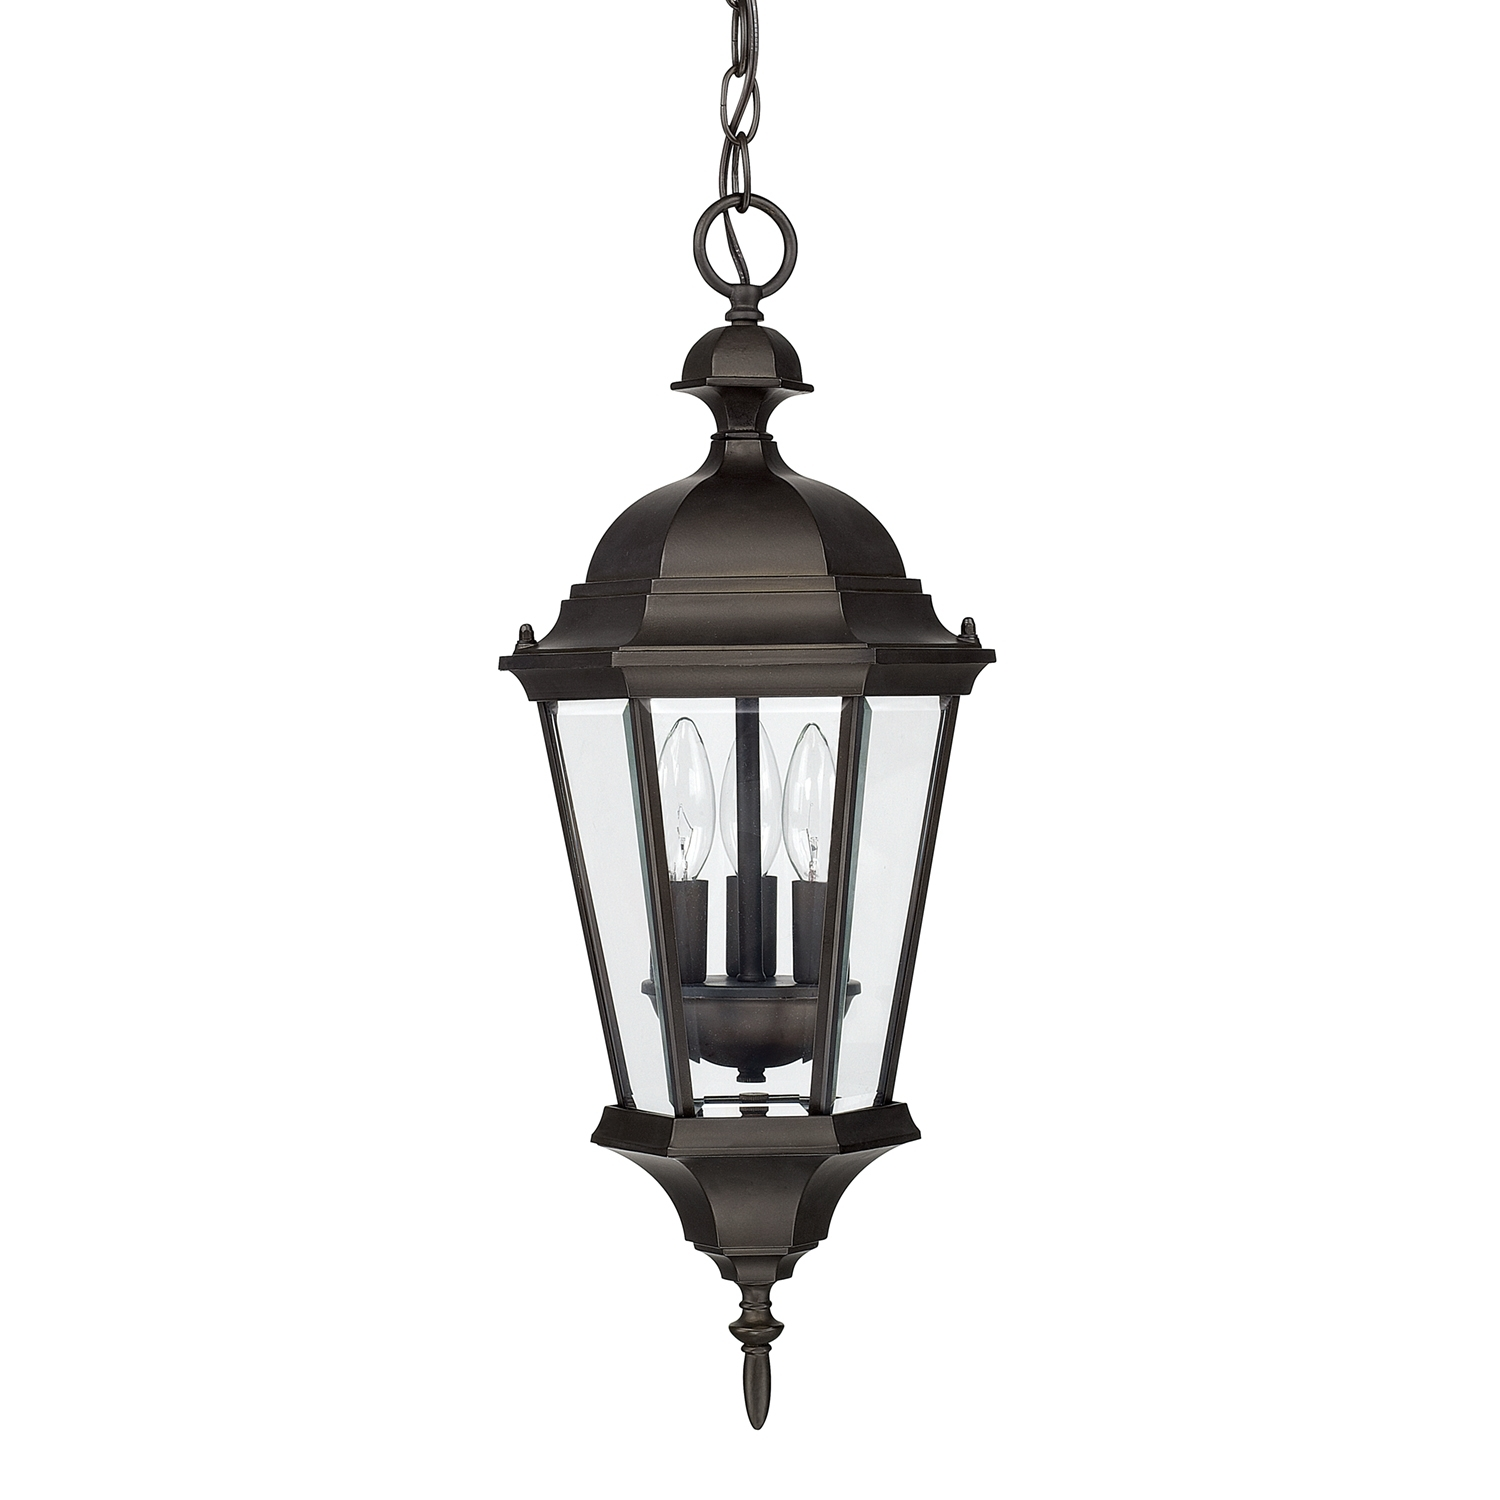 Carriage House | Capital Lighting Fixture Company Regarding Outdoor Hanging Coach Lanterns (View 11 of 15)